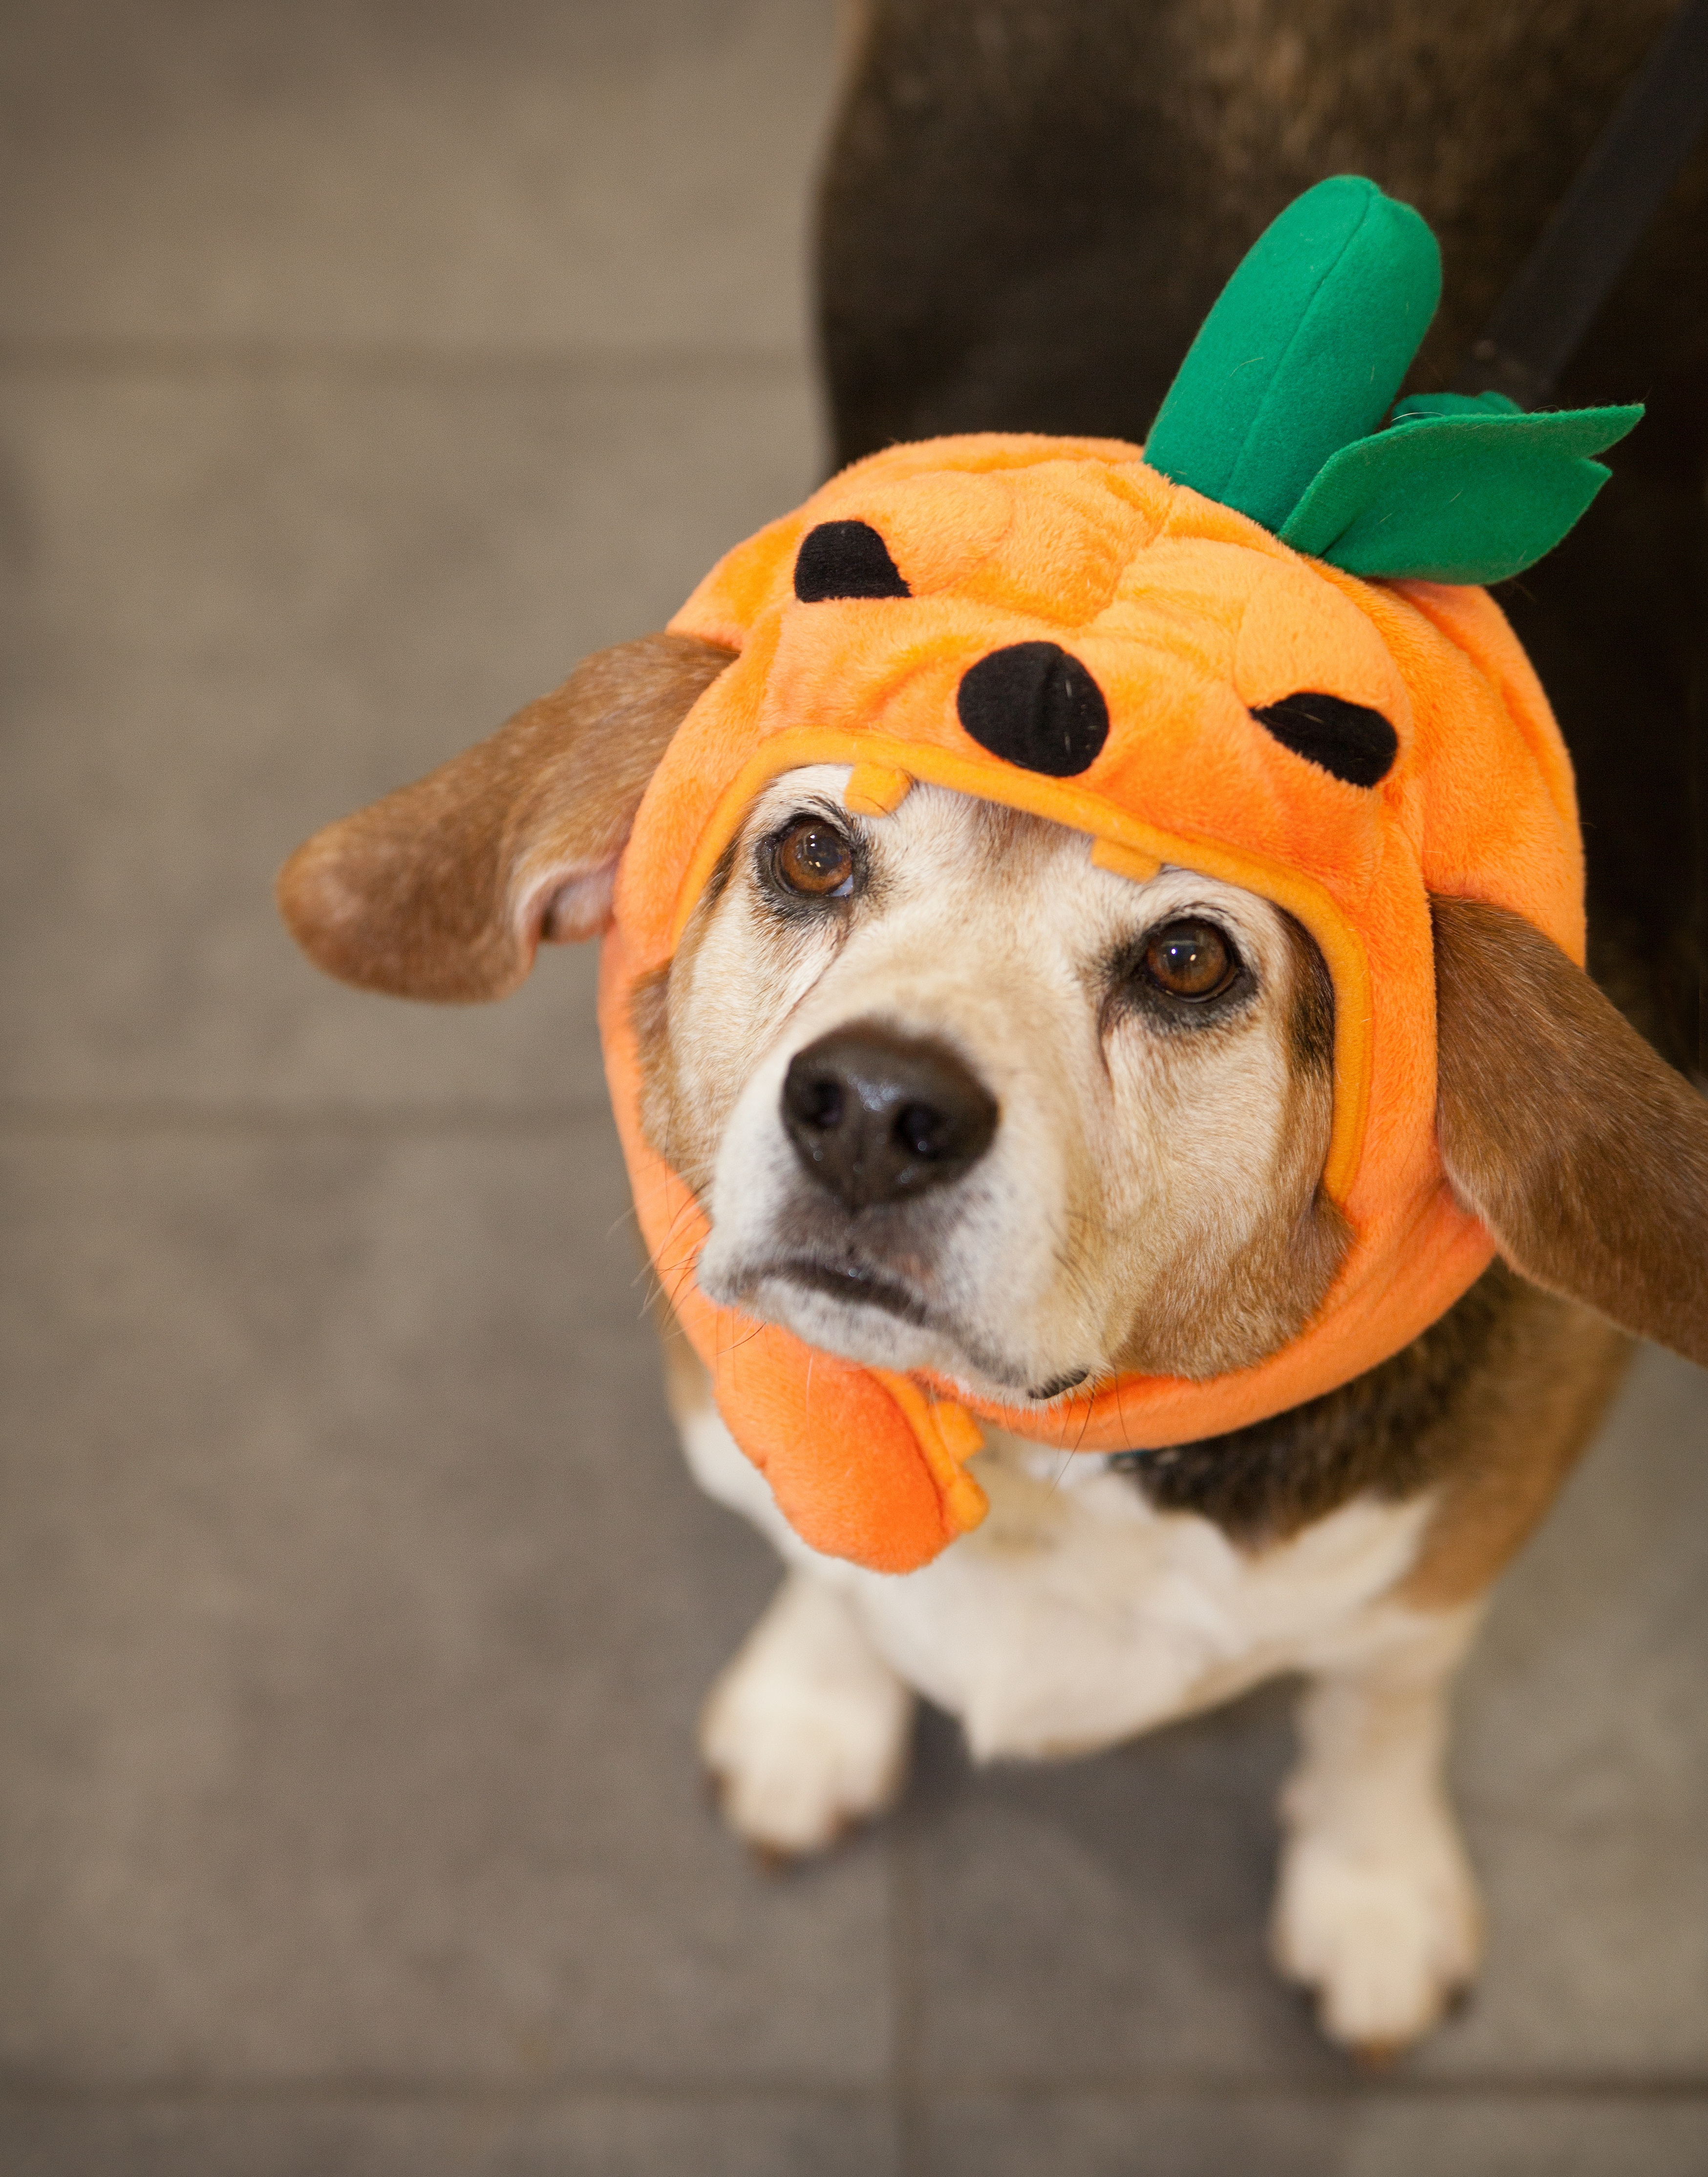 Pets and Halloween